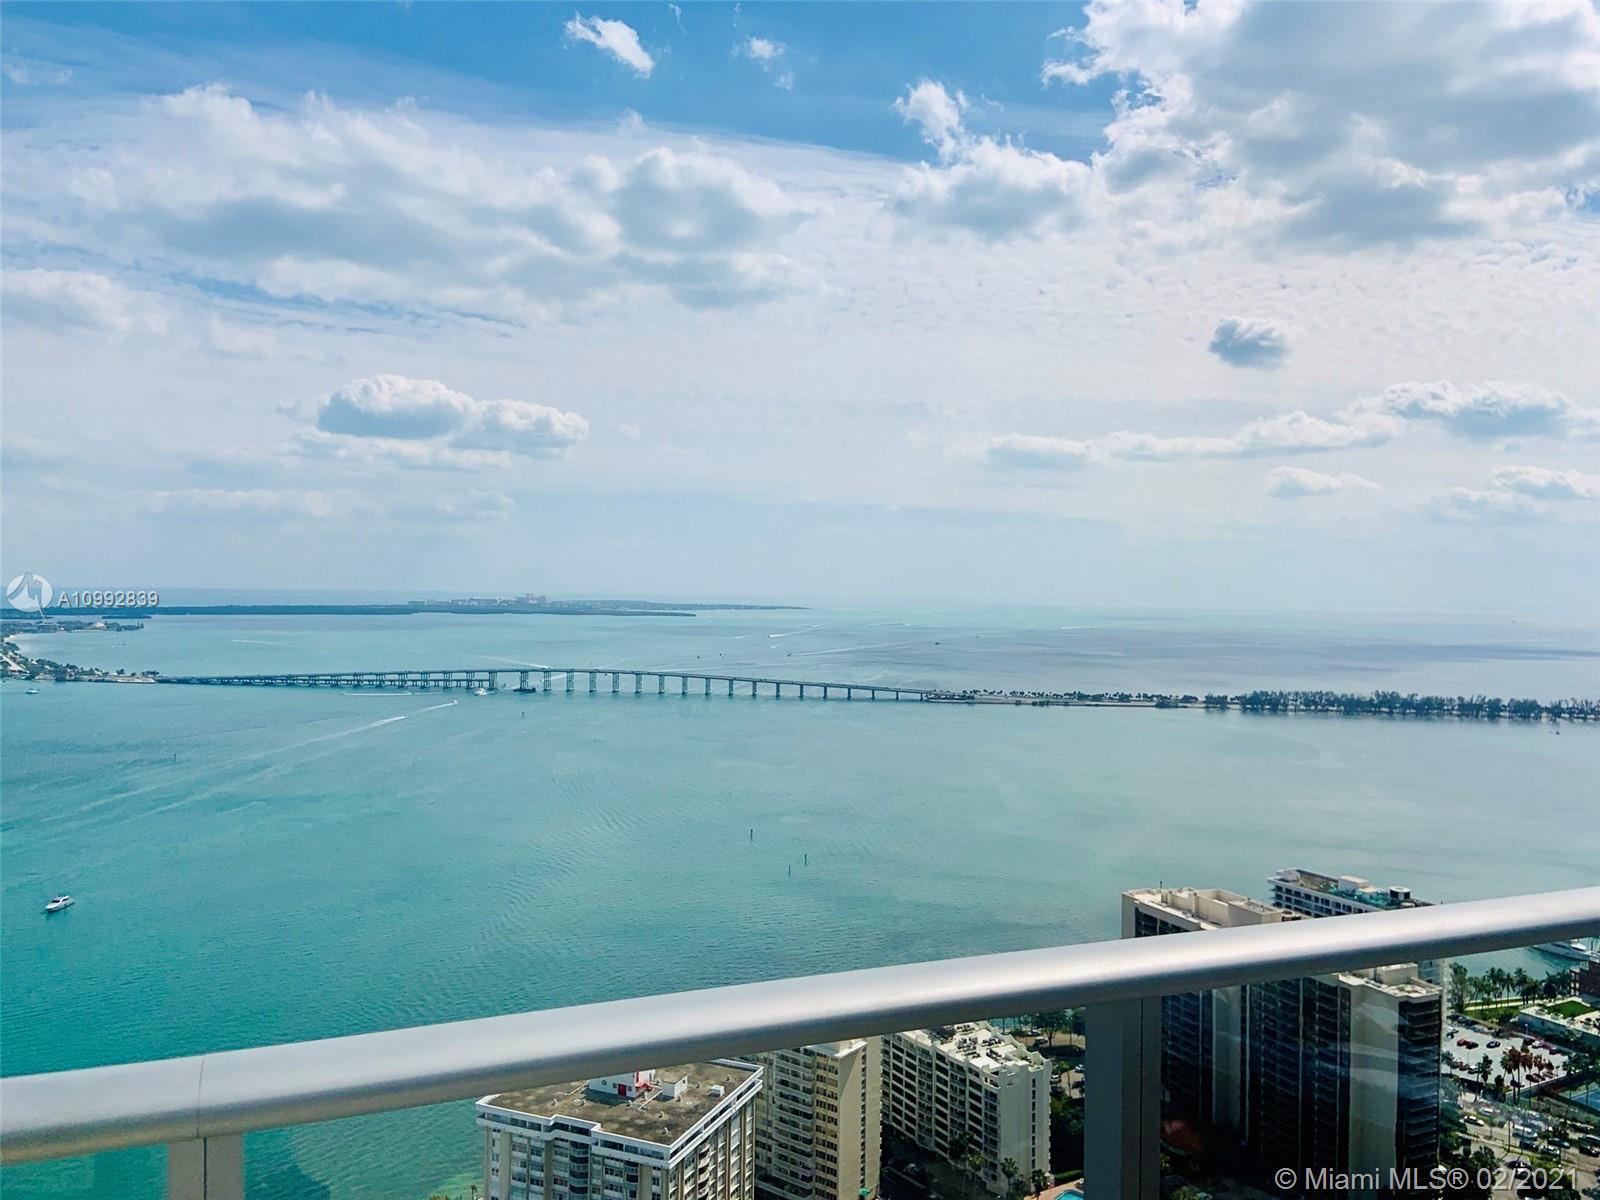 Beautiful corner unit with 2 bedroom/2 bathroom, white tile floors, fully equipped kitchen, walk -in closet, Floor to ceiling windows with shades and Balcony offering breathtaking views of Biscayne Bay. Amenities include 24hr welcome Desk and Concierge Center, 24hr Valet guest service, family areas, HD screening room with 10-ft screen theater-style seating, men and women steam rooms, barbecue area, mezzanine with heated whirlpool, expansive 46th floor sky deck with pool. Fully equipped technologically advanced fitness center and lounge.